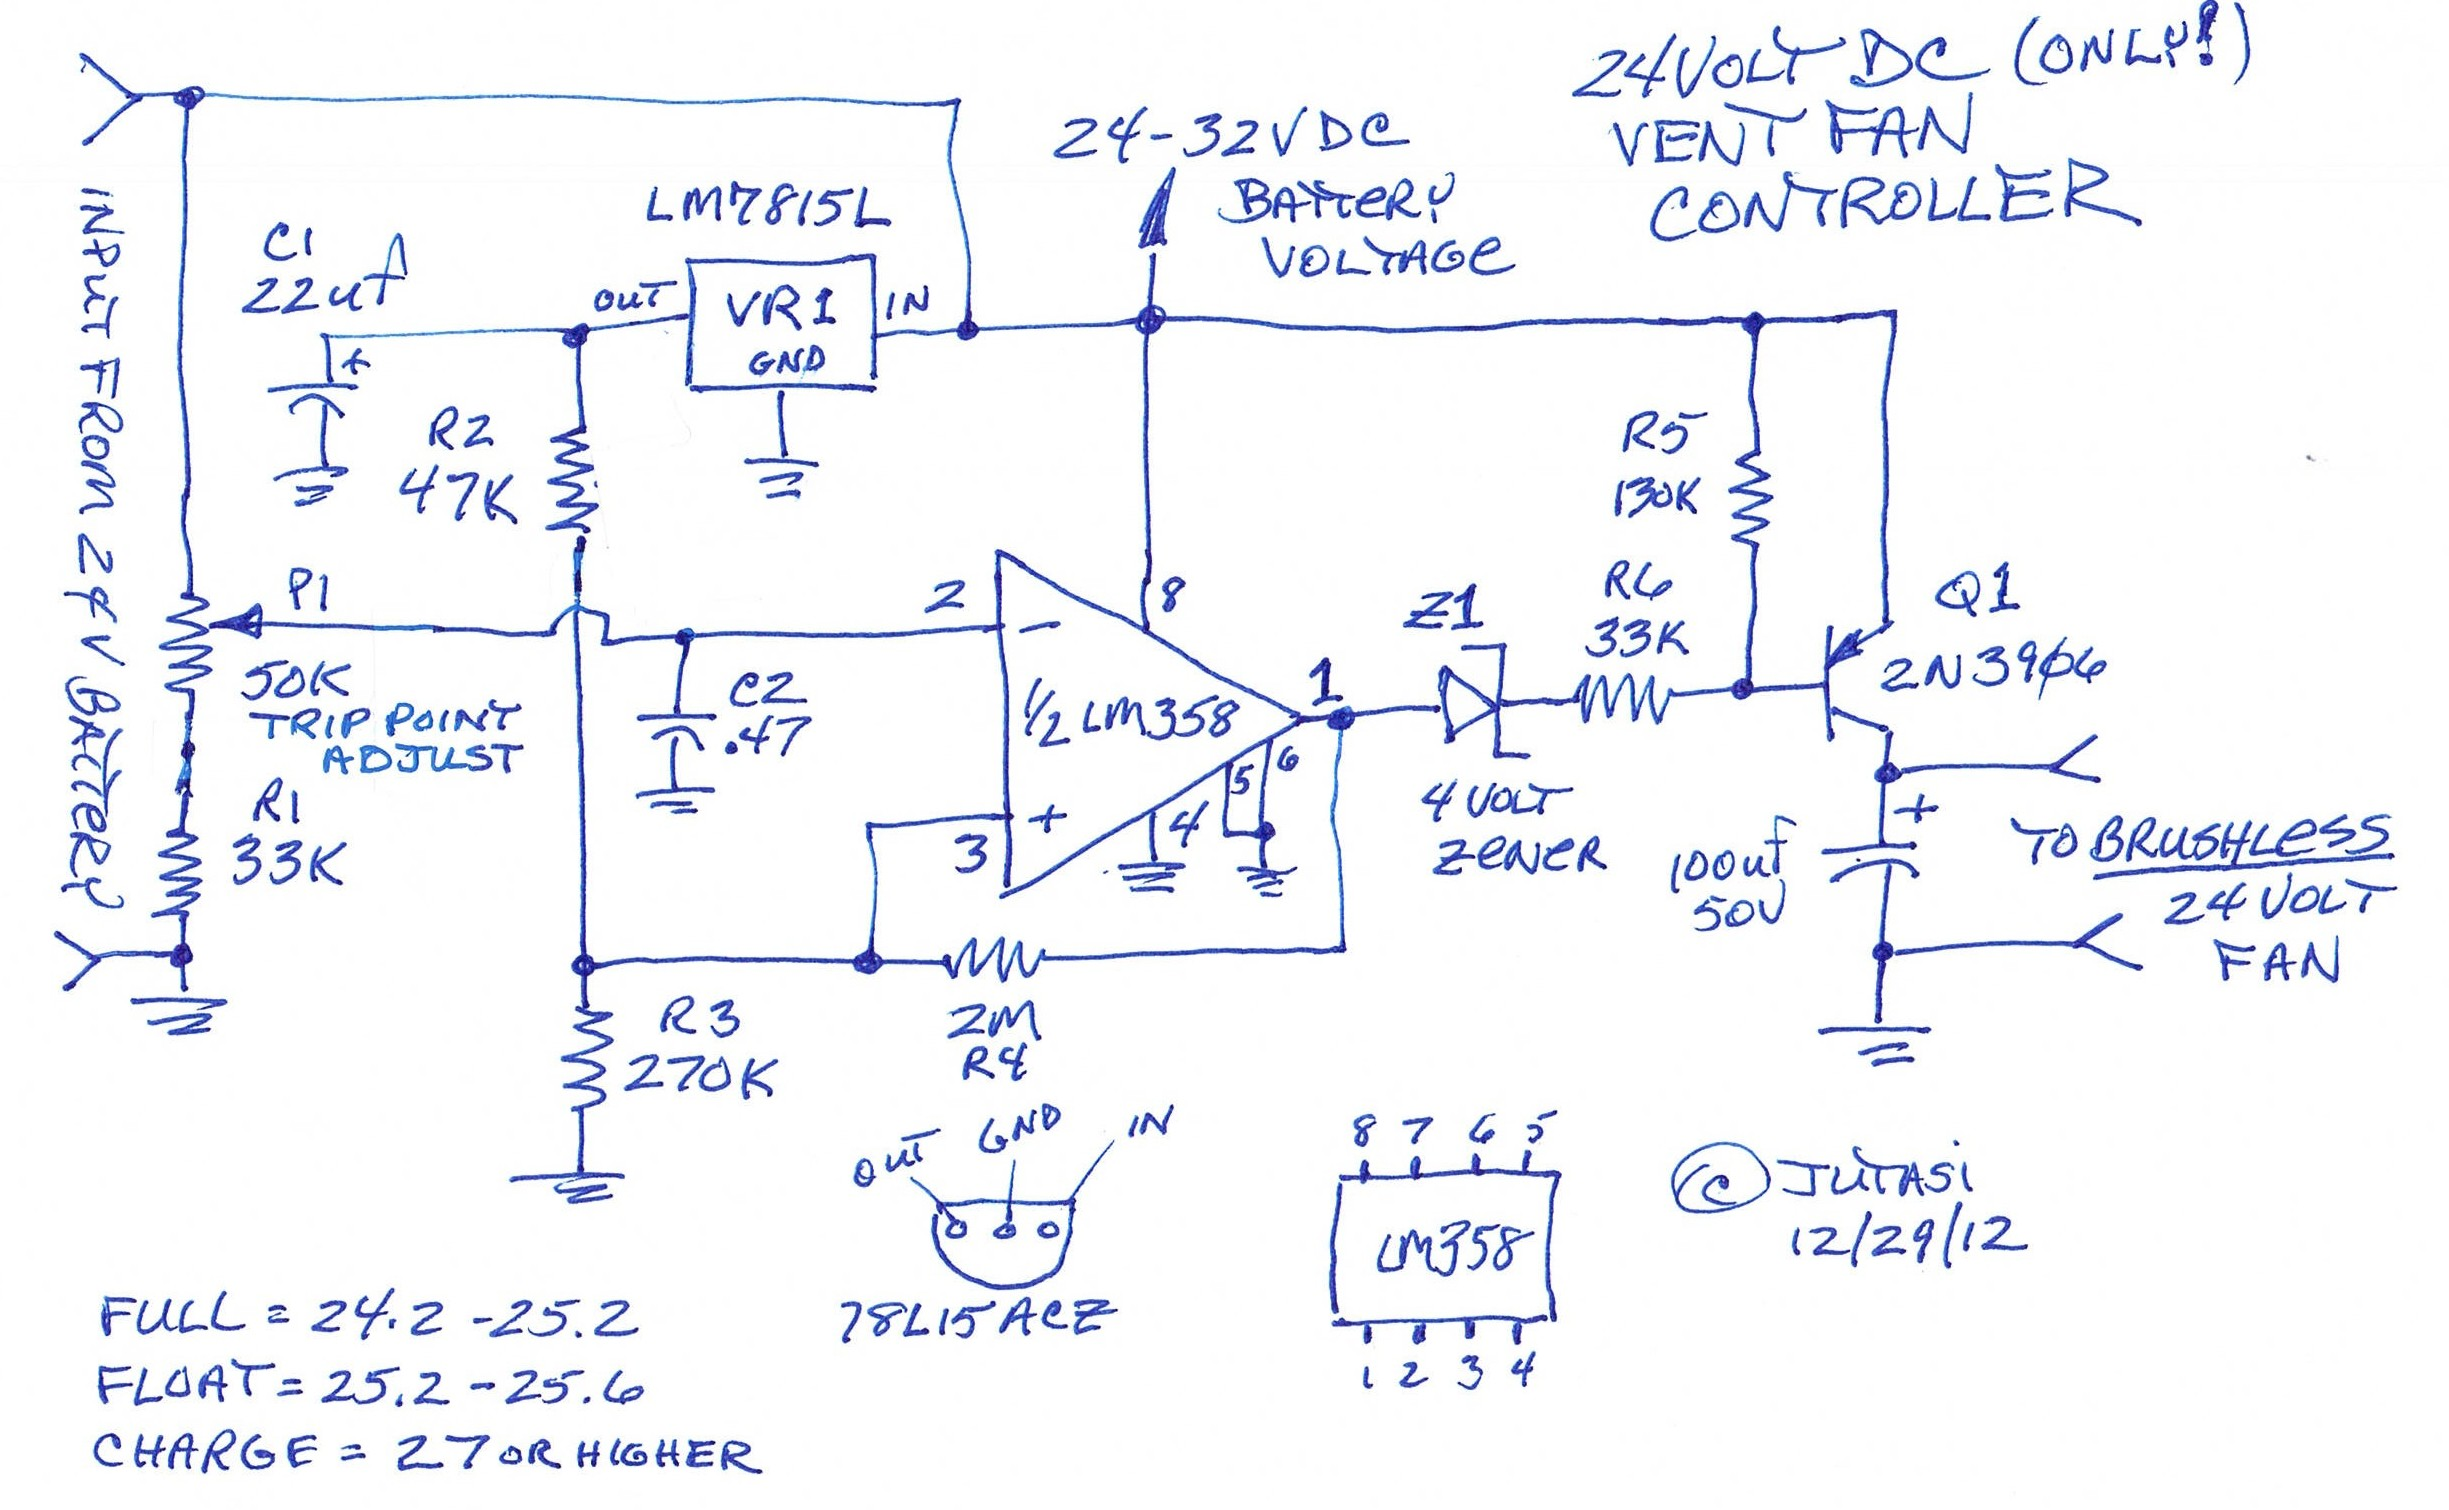 Fan Control Schematic Great Design Of Wiring Diagram Concord Switch Gt Circuits 24 Volt Battery Box Vent Circuit